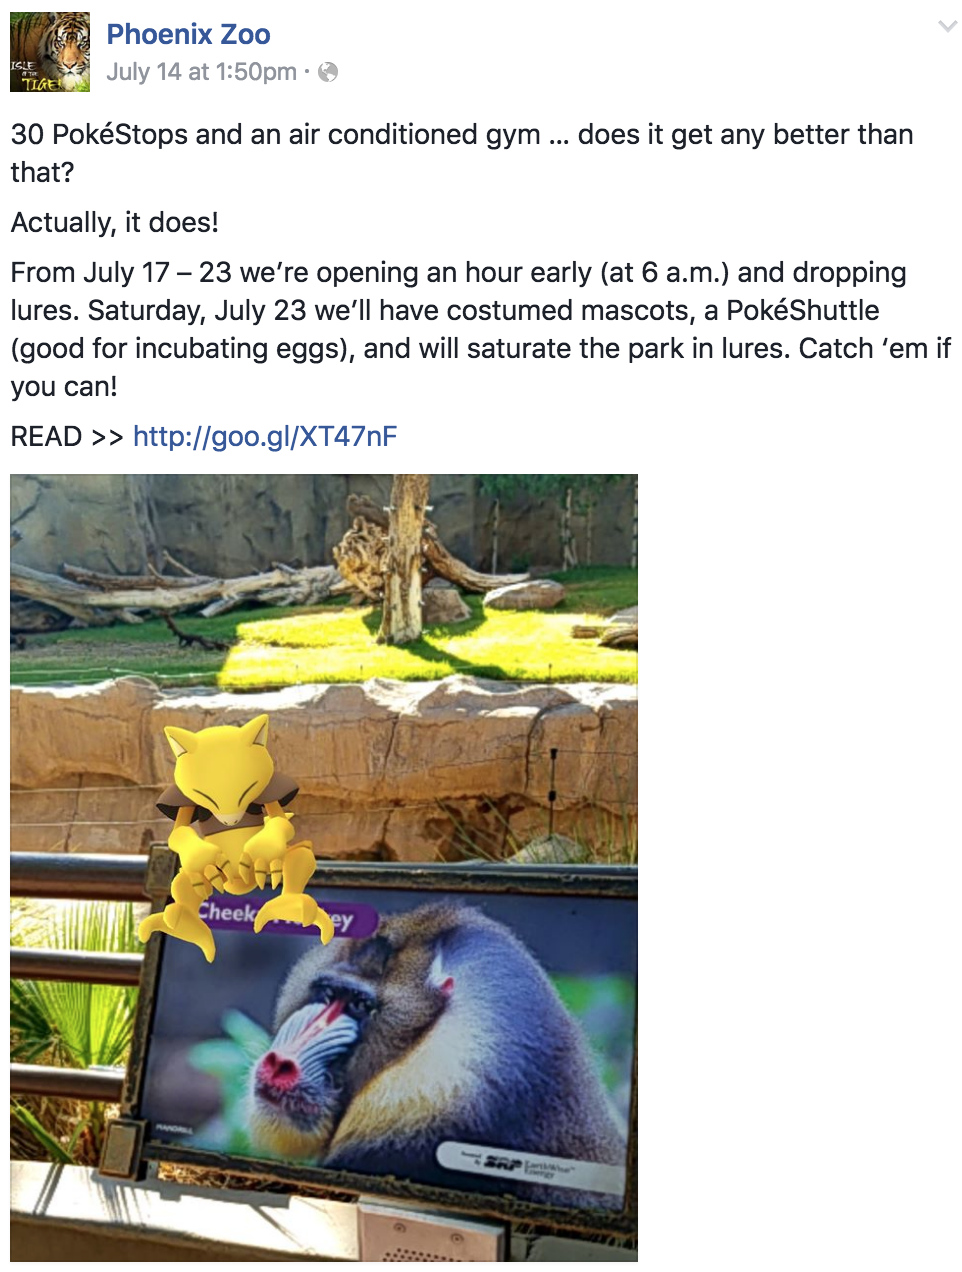 Pokemon GO at the Phoenix Zoo